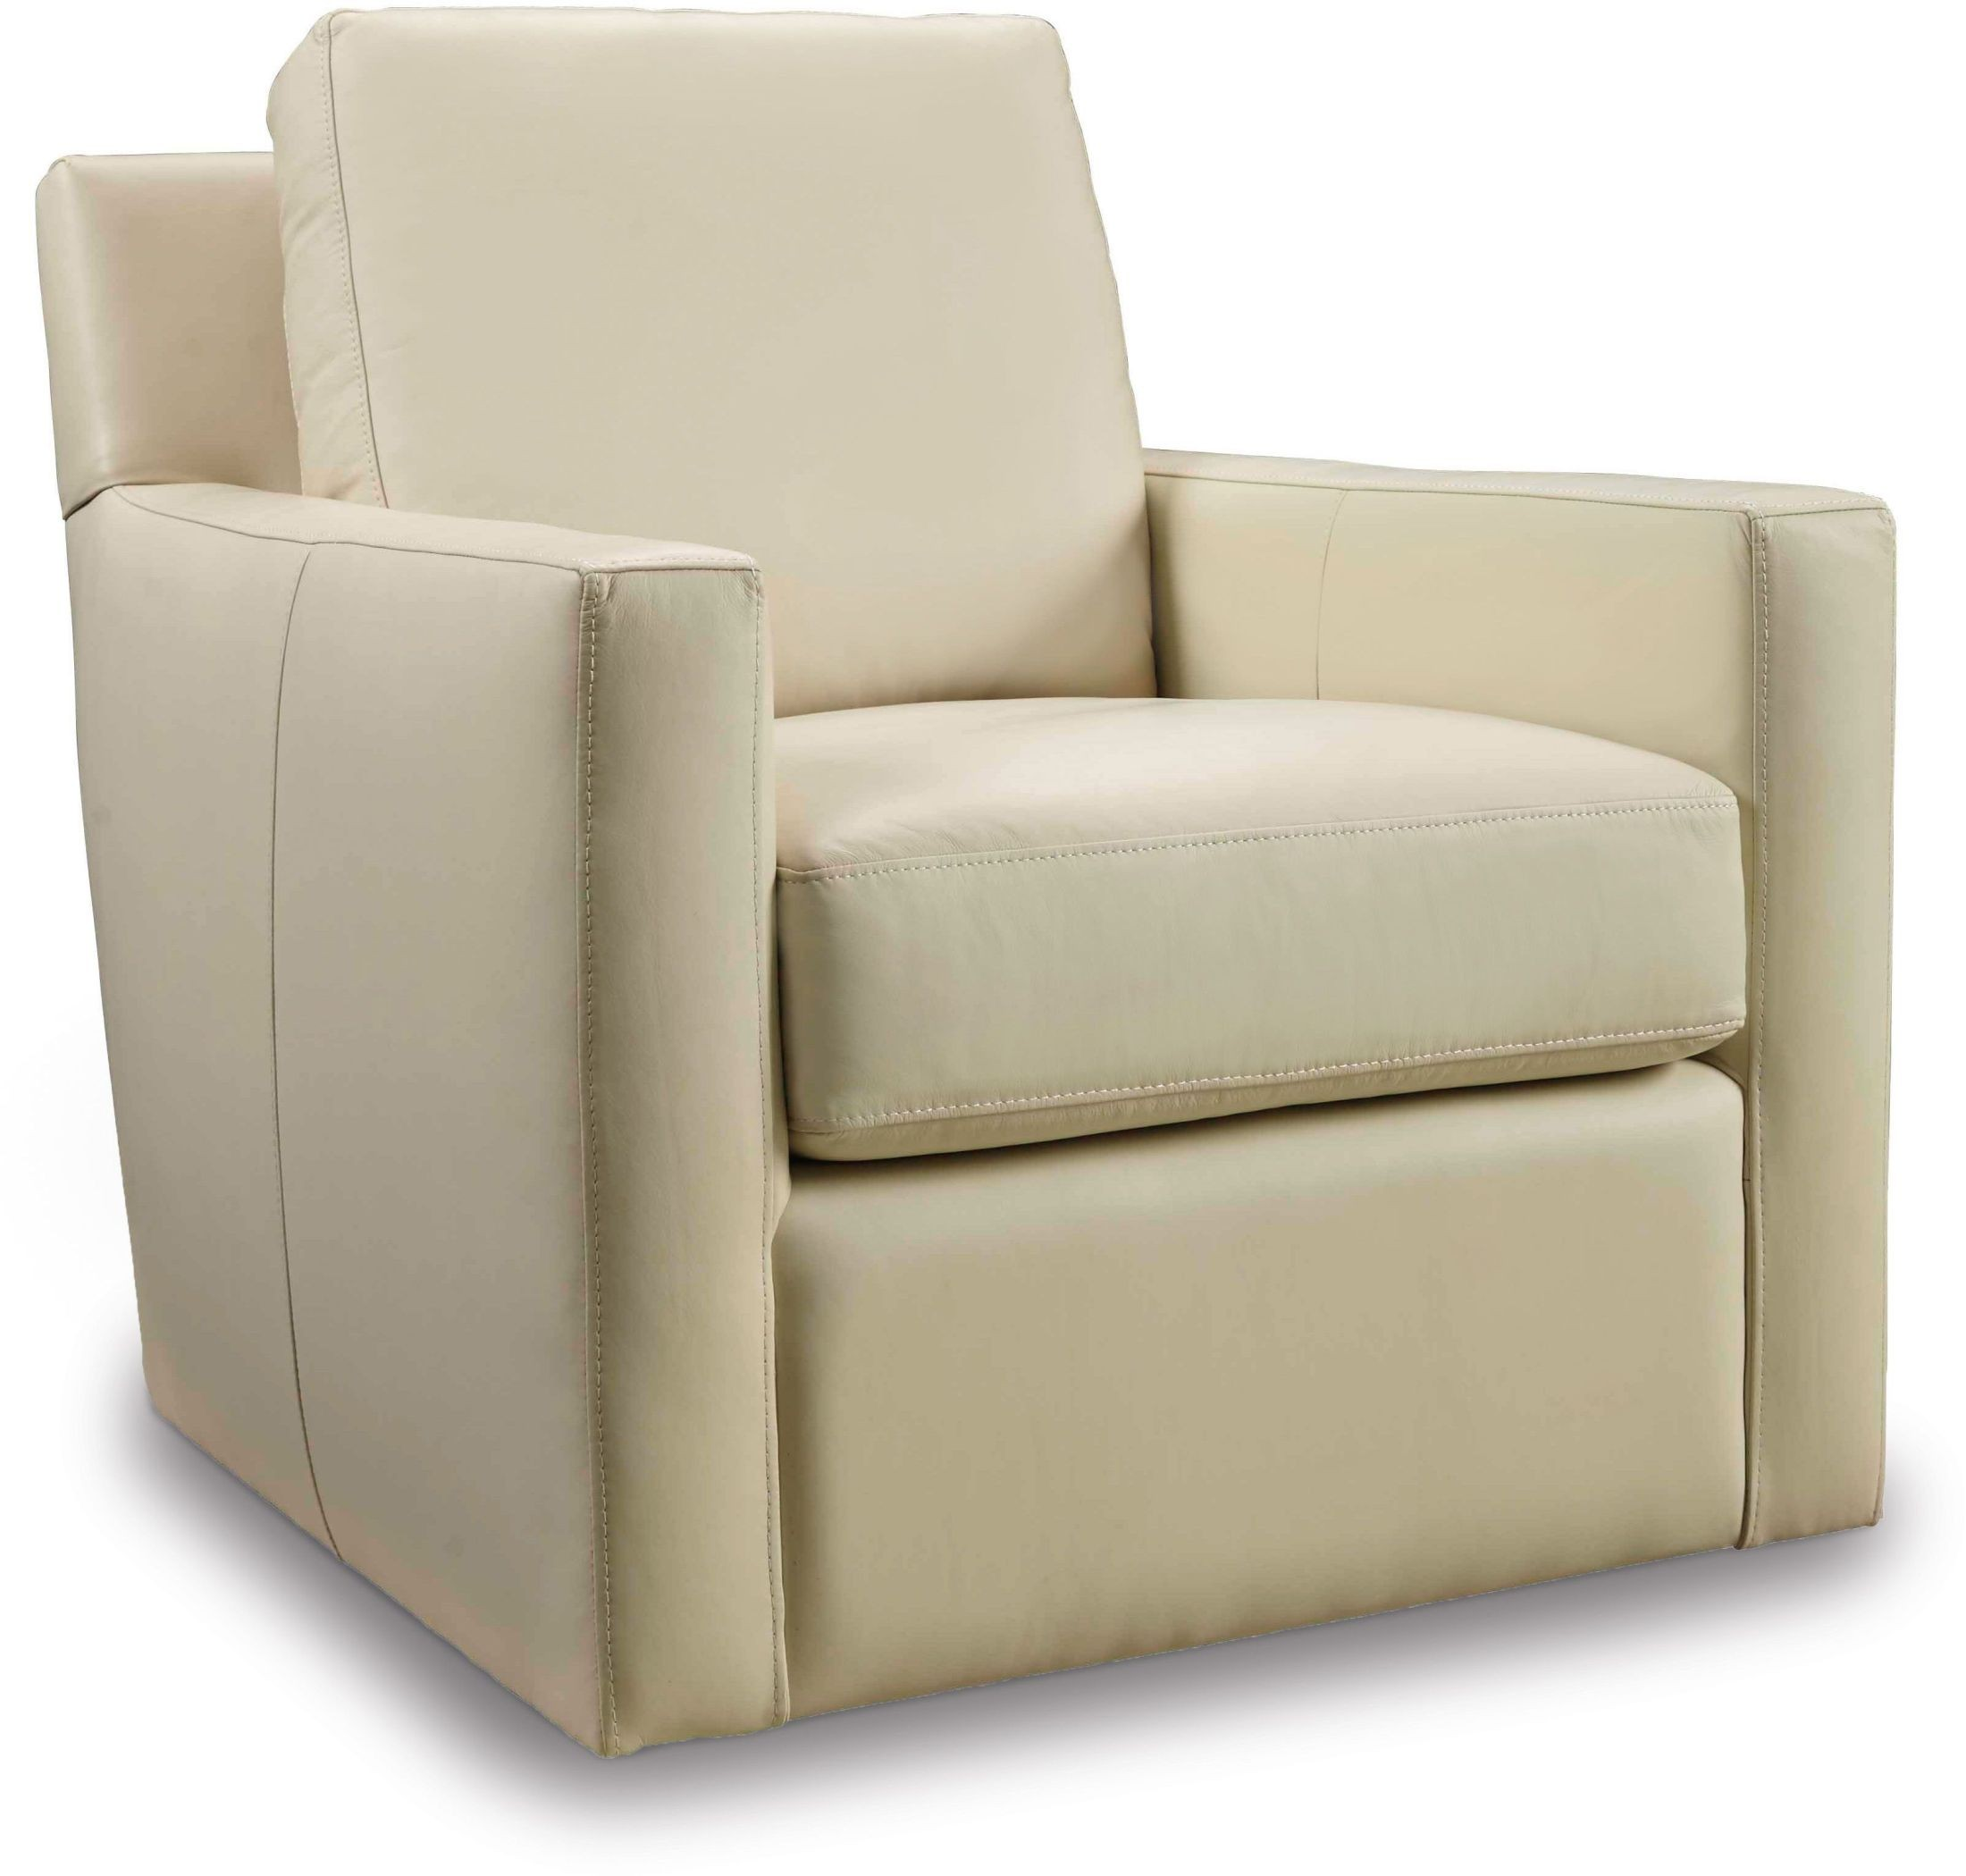 Jada beige leather swivel club chair from hooker coleman for Swivel club chair leather